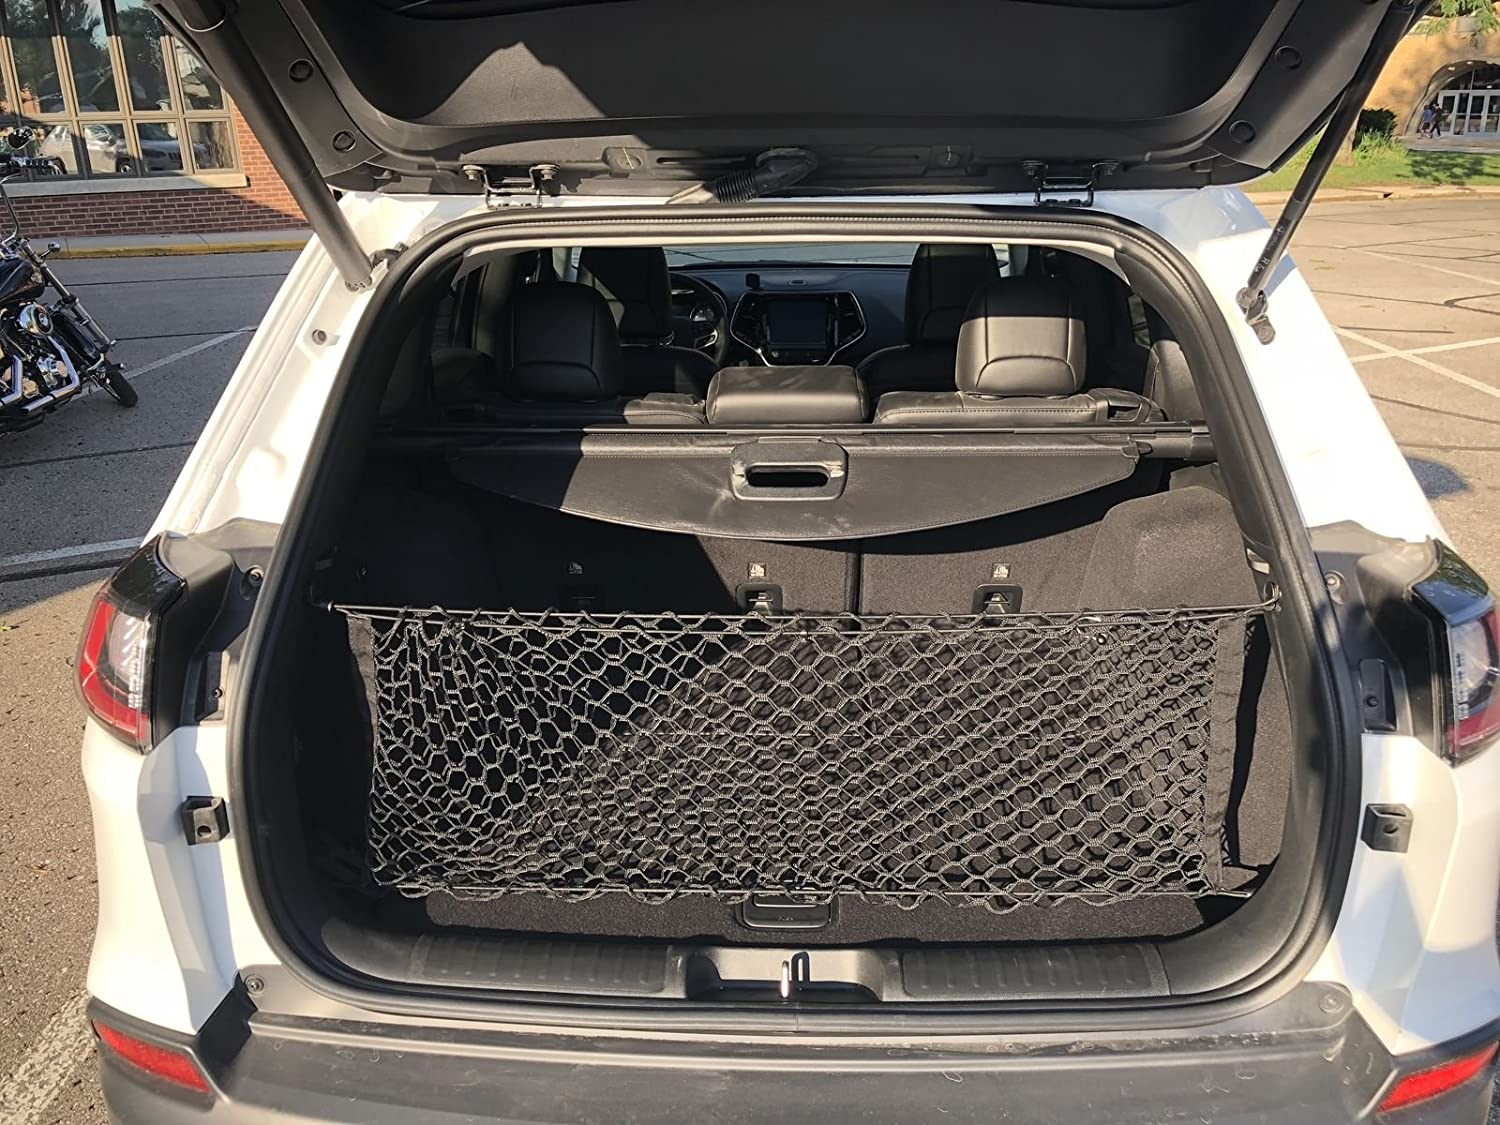 Envelope Style Trunk Cargo Net For JEEP CHEROKEE 2019 NEW Trunknets Inc